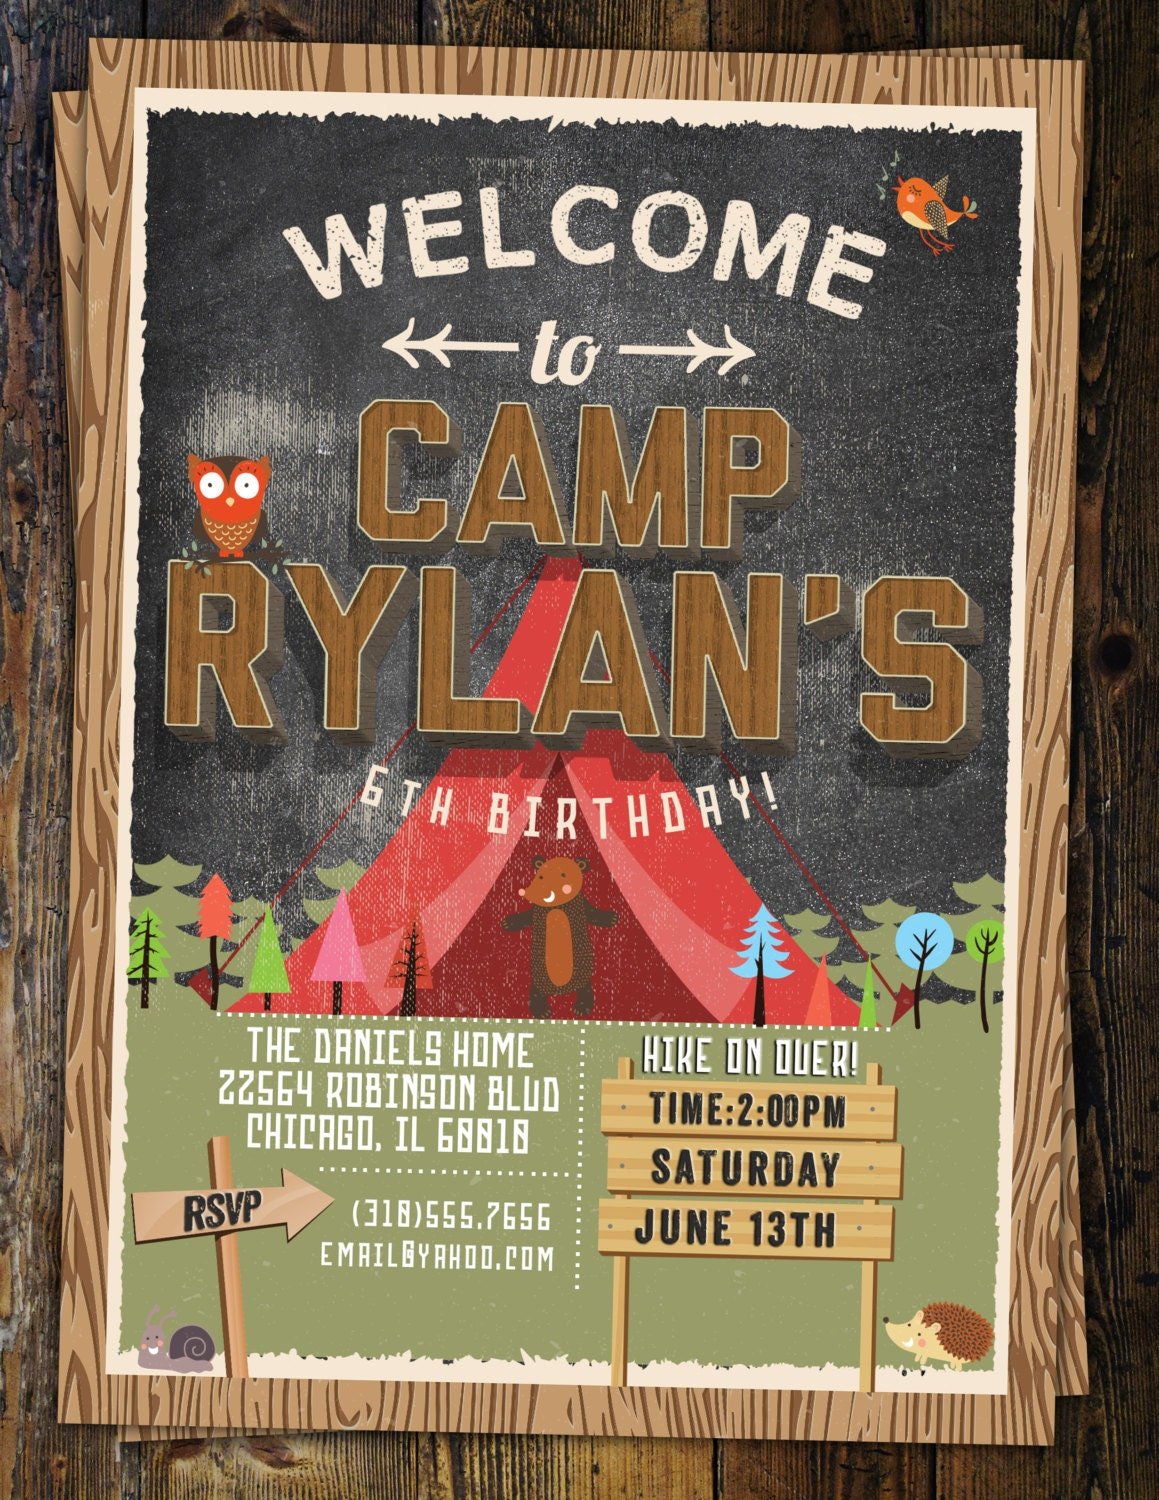 Camp birthday camping birthday animals invitation invite camp birthday camping birthday animals invitation invite outdoor adventure party wilderness lumberjack boy scout kids birthday filmwisefo